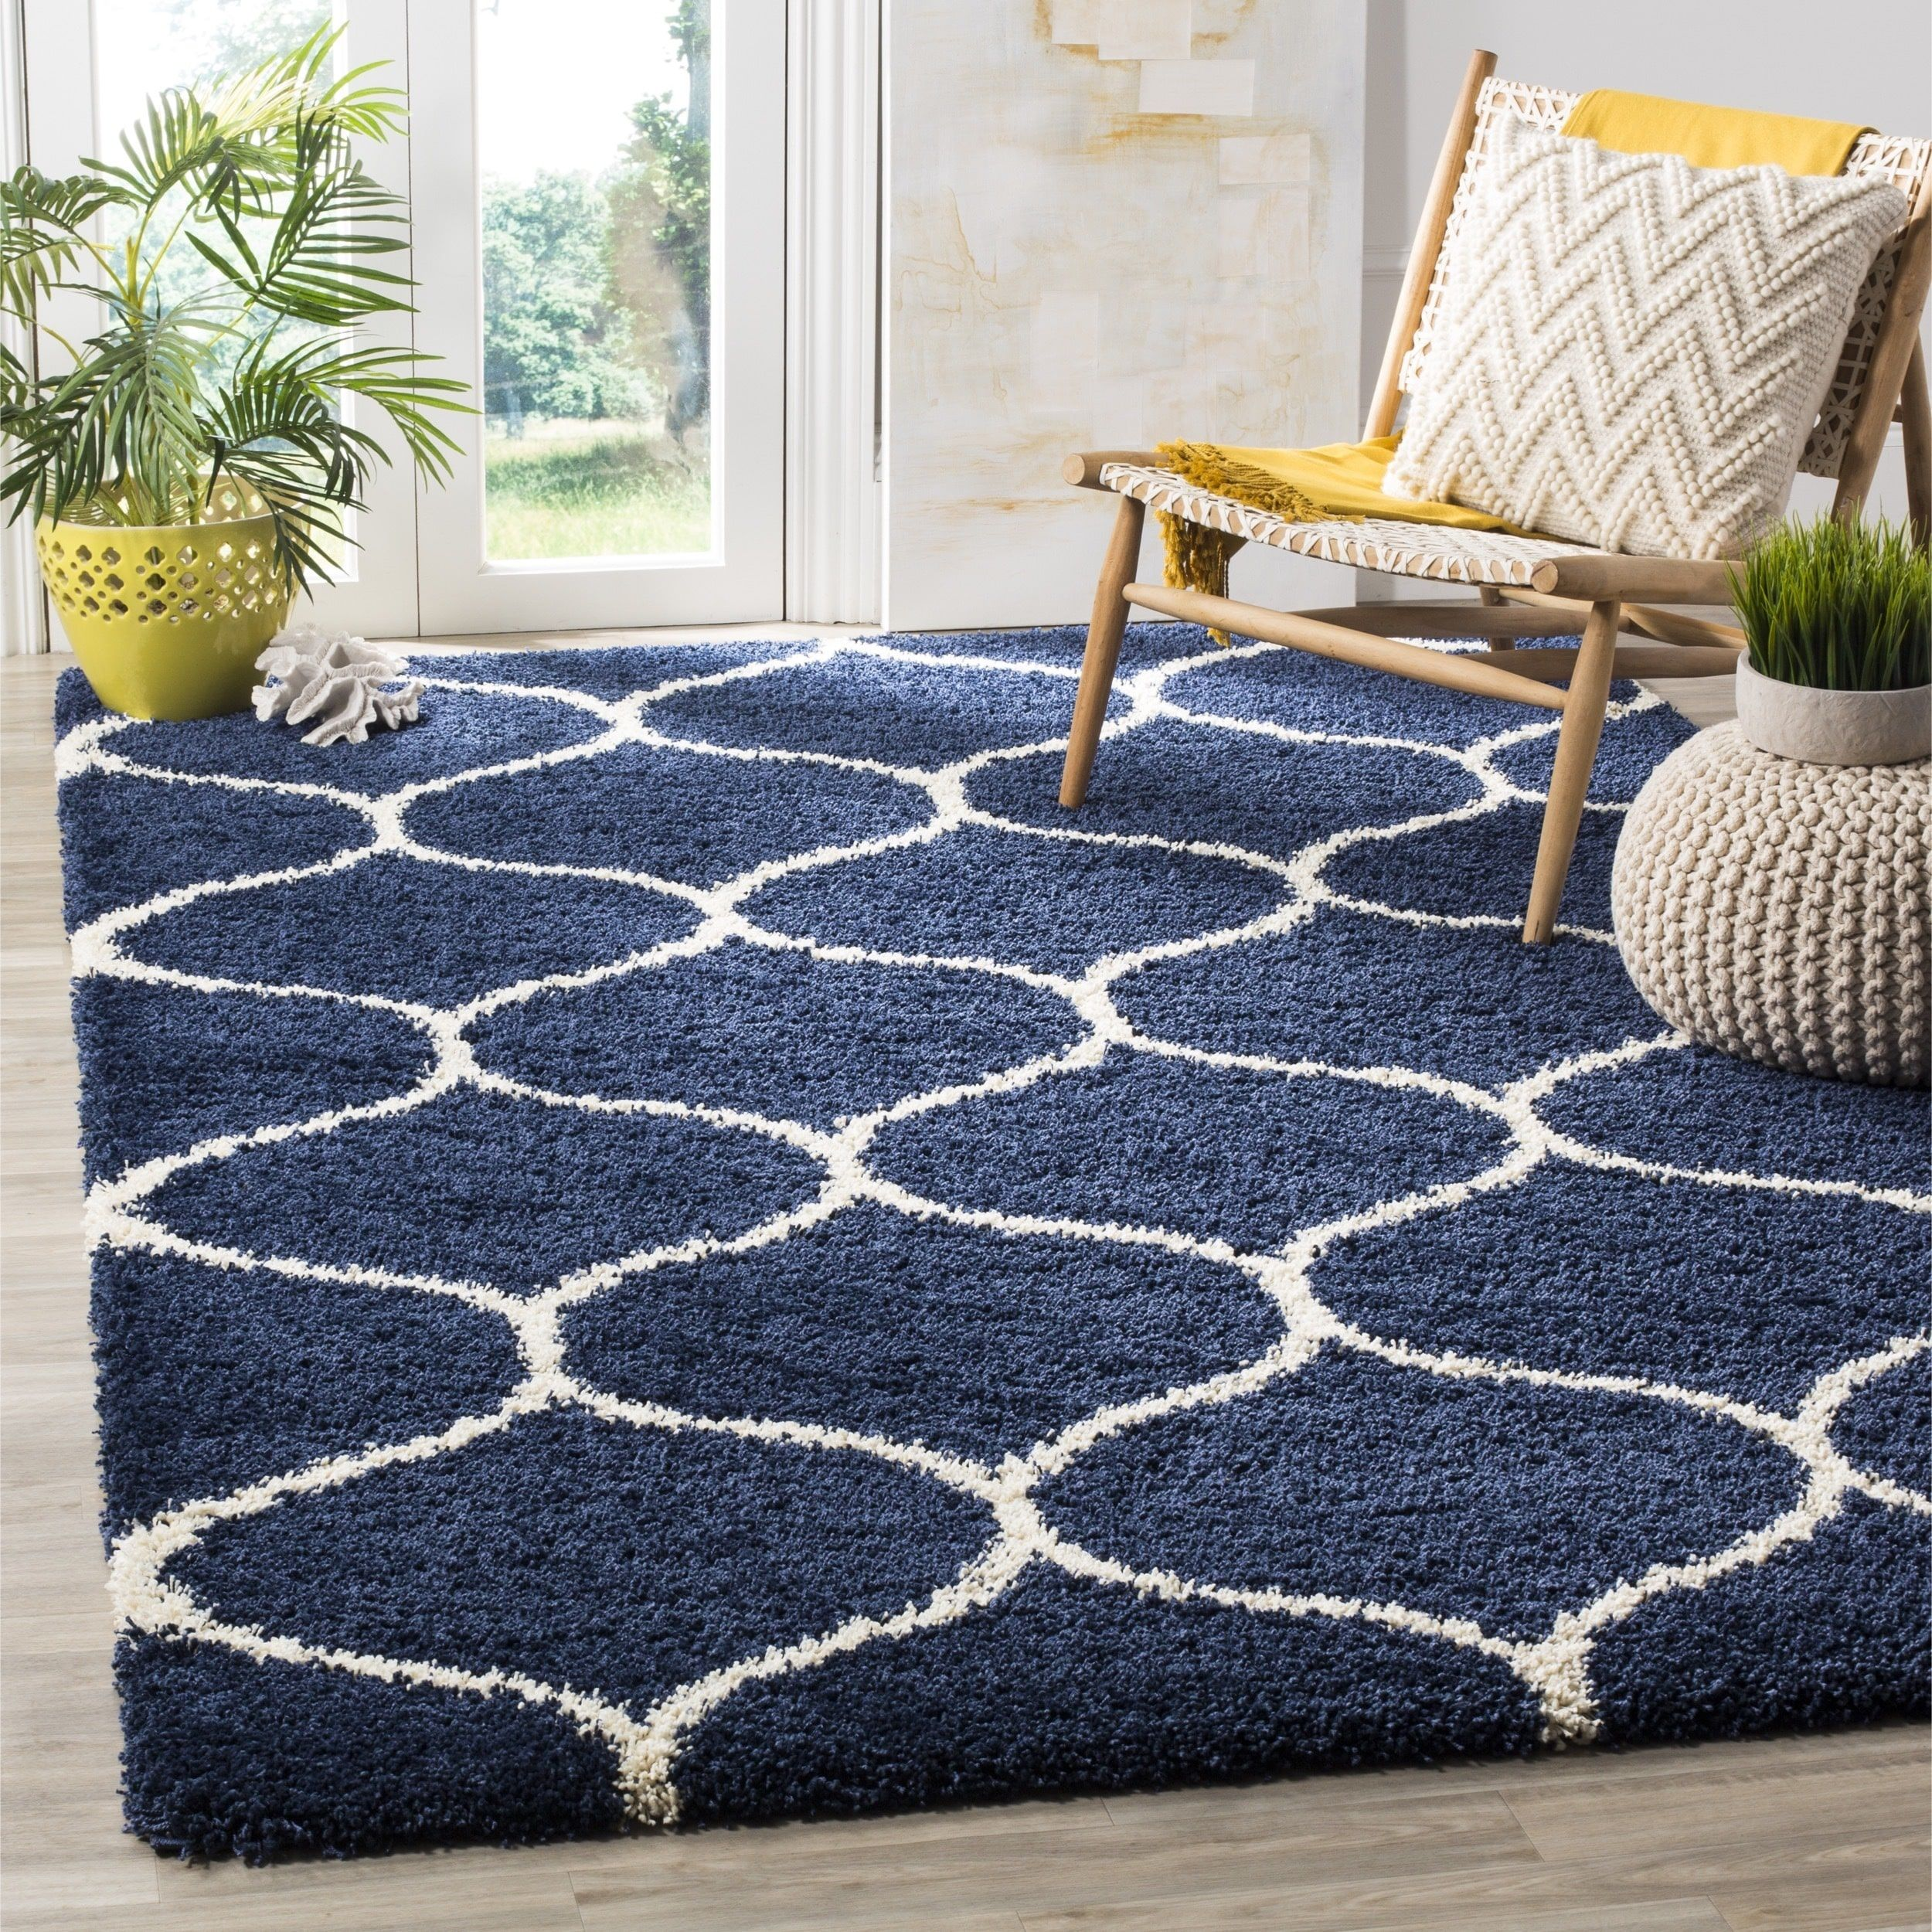 Large Area Rug Home Goods Free Shipping On Orders Over 45 At Your Get 5 In Rewards With Club O